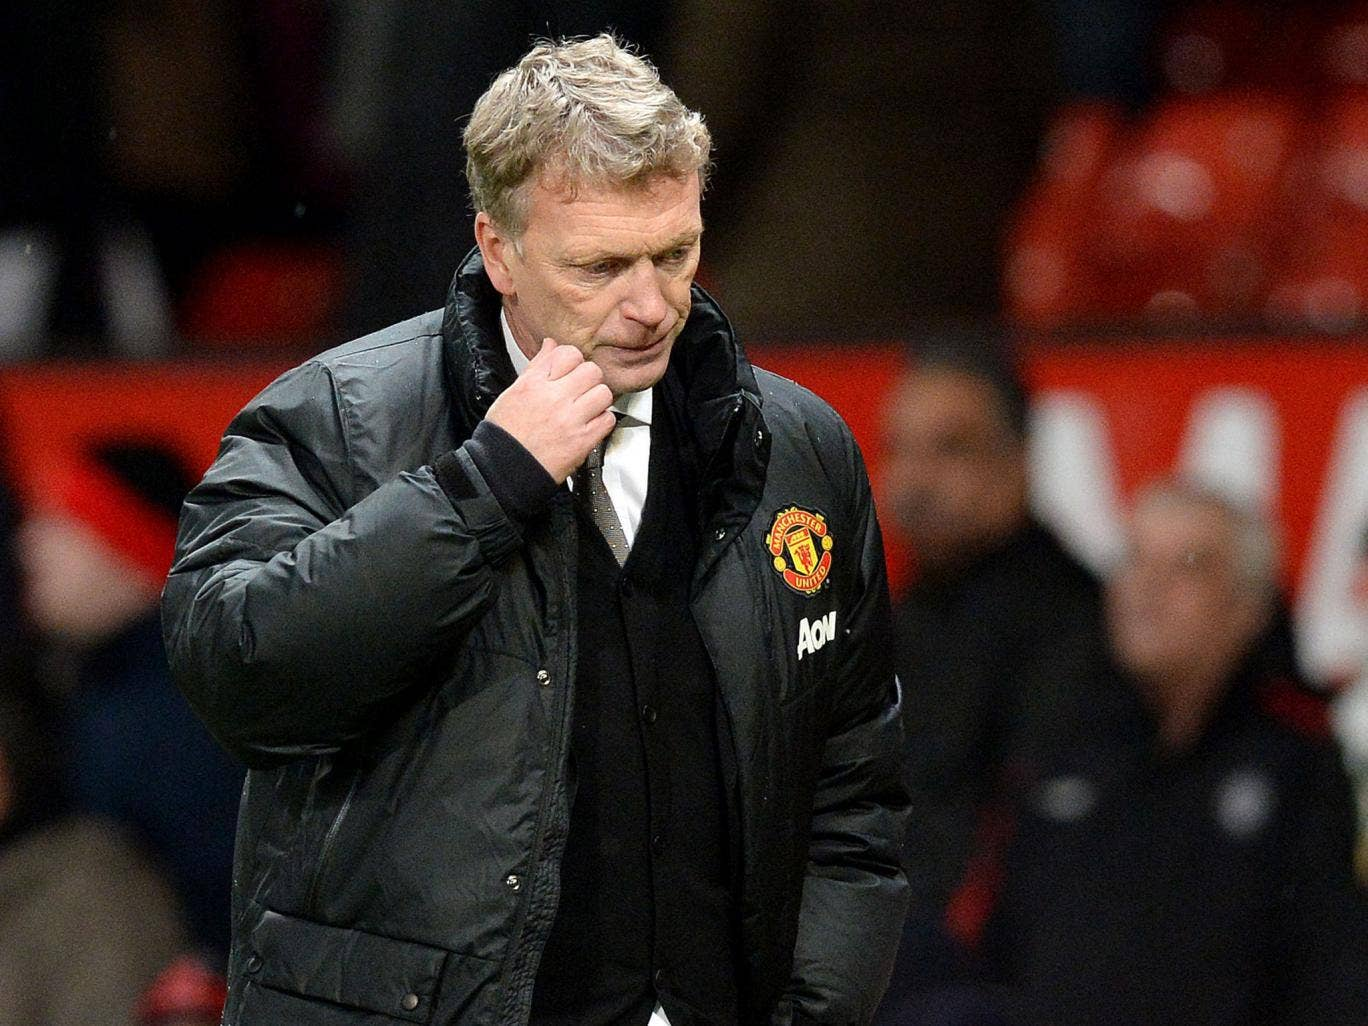 David Moyes says his team is in need of urgent overhaul